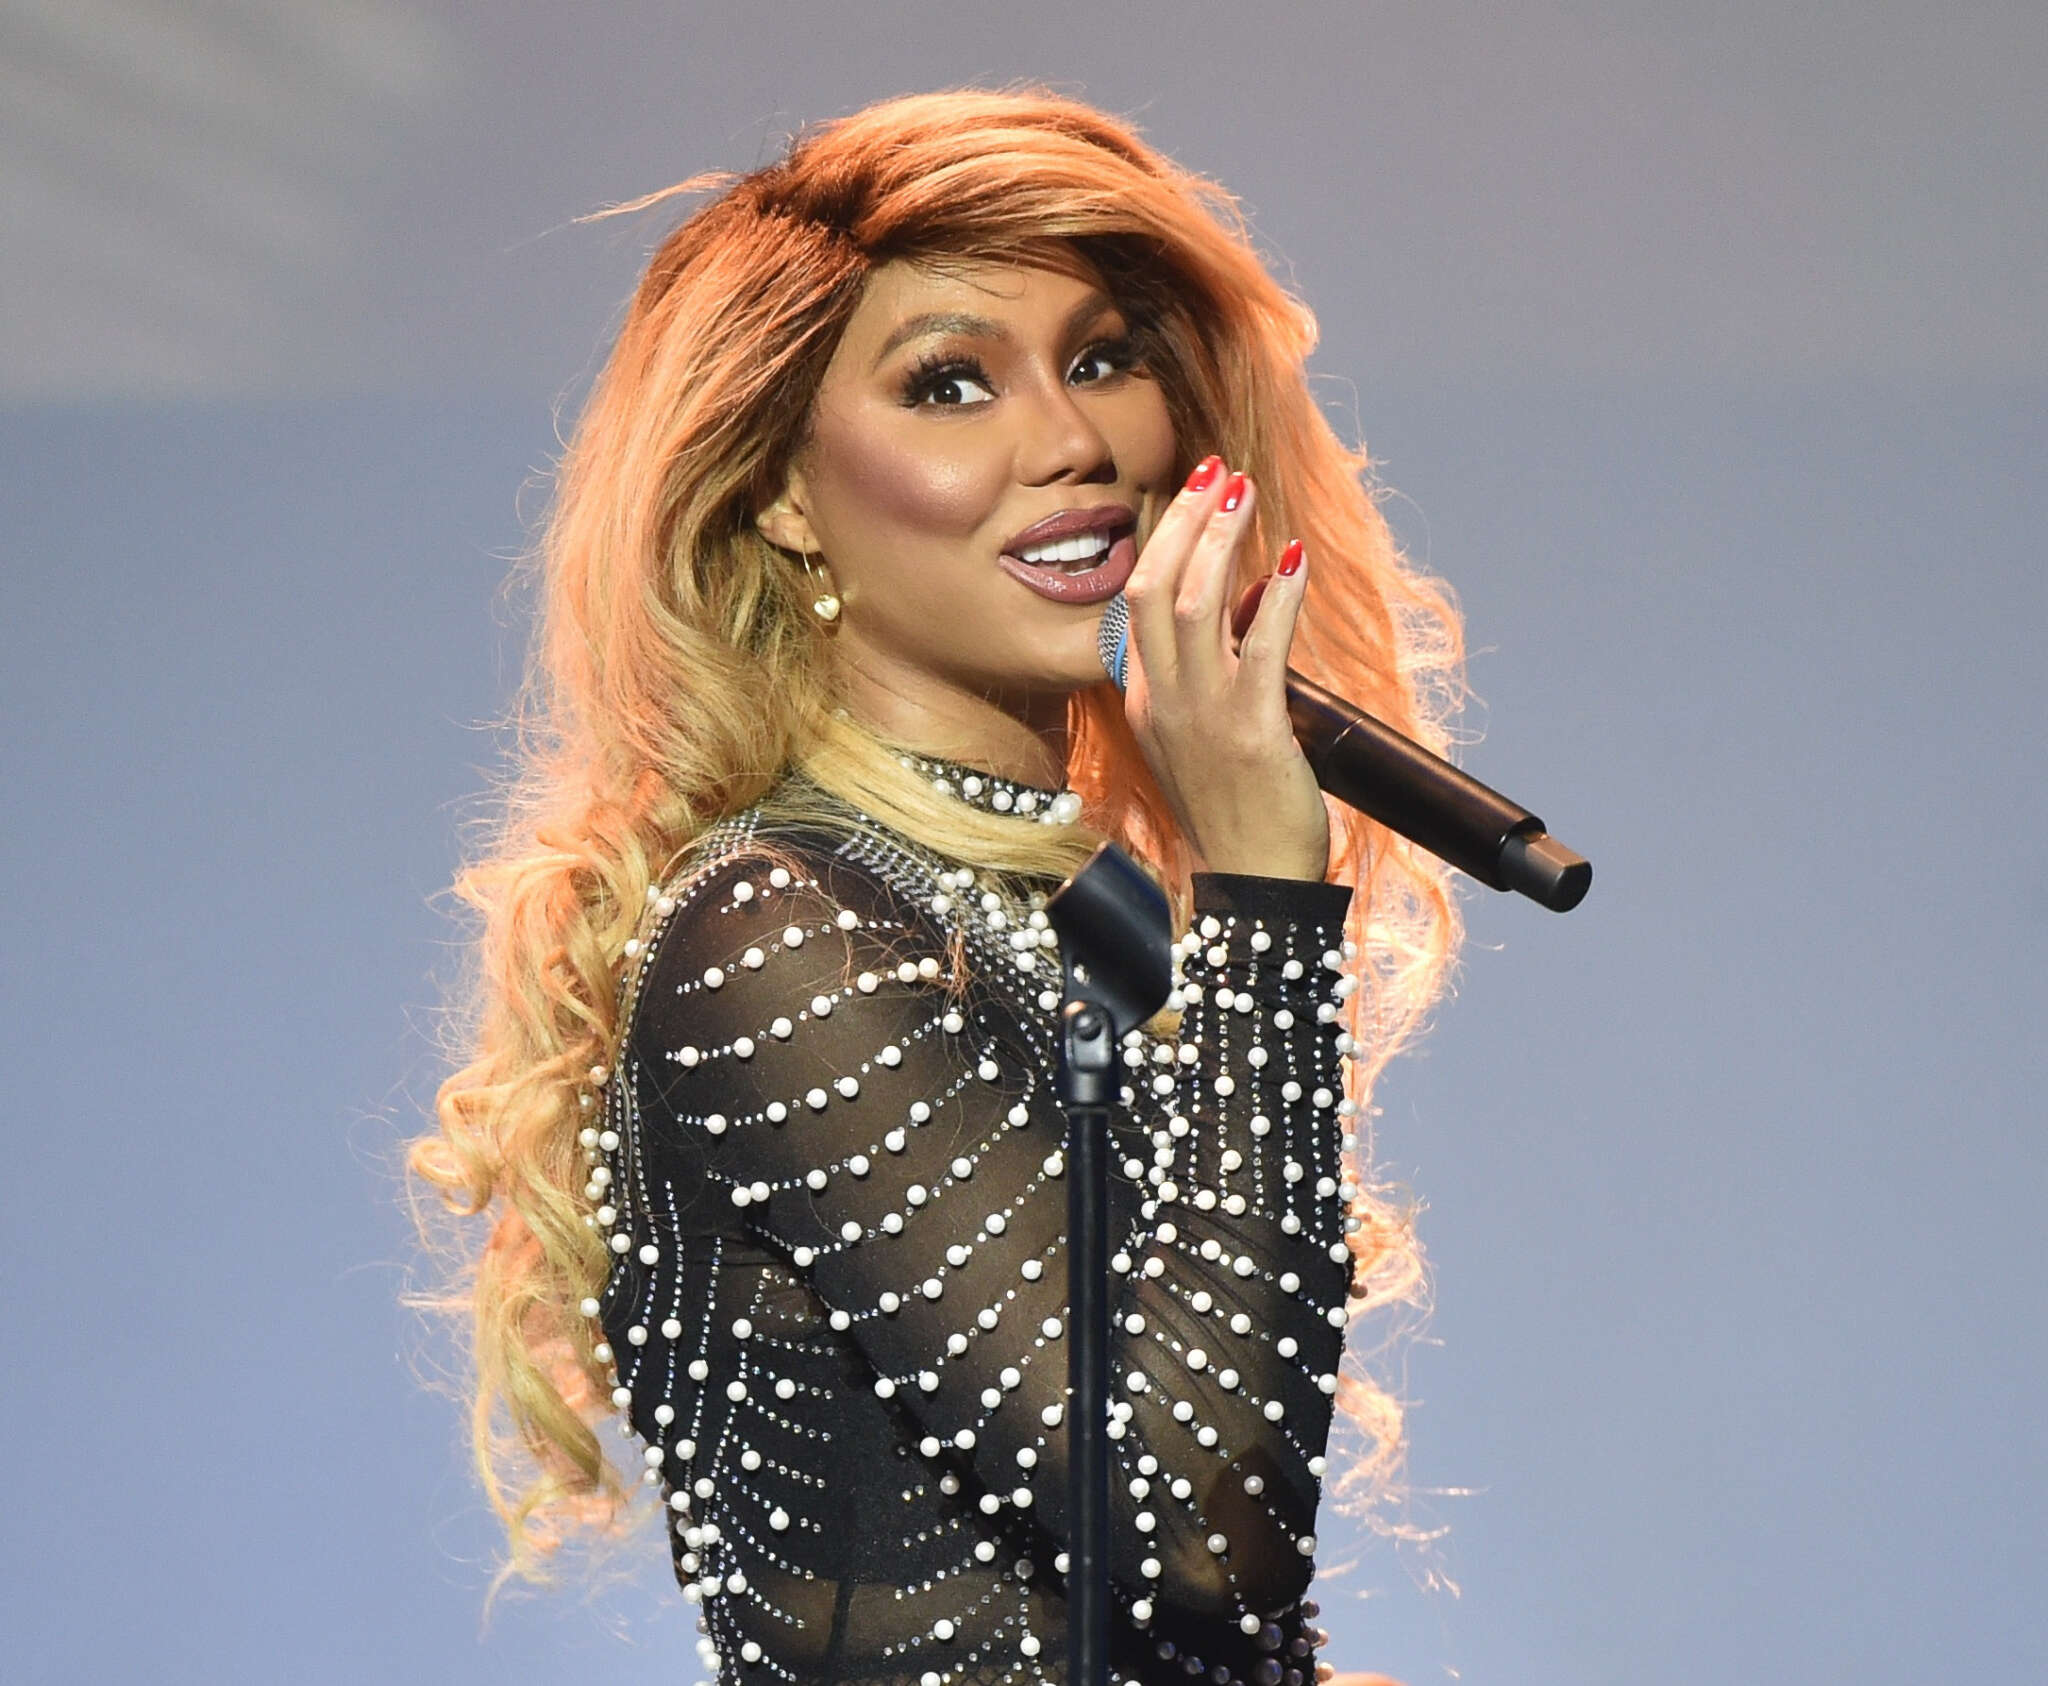 Tamar Braxton Shares A New Episode Of Her 'Under Construction' Podcast